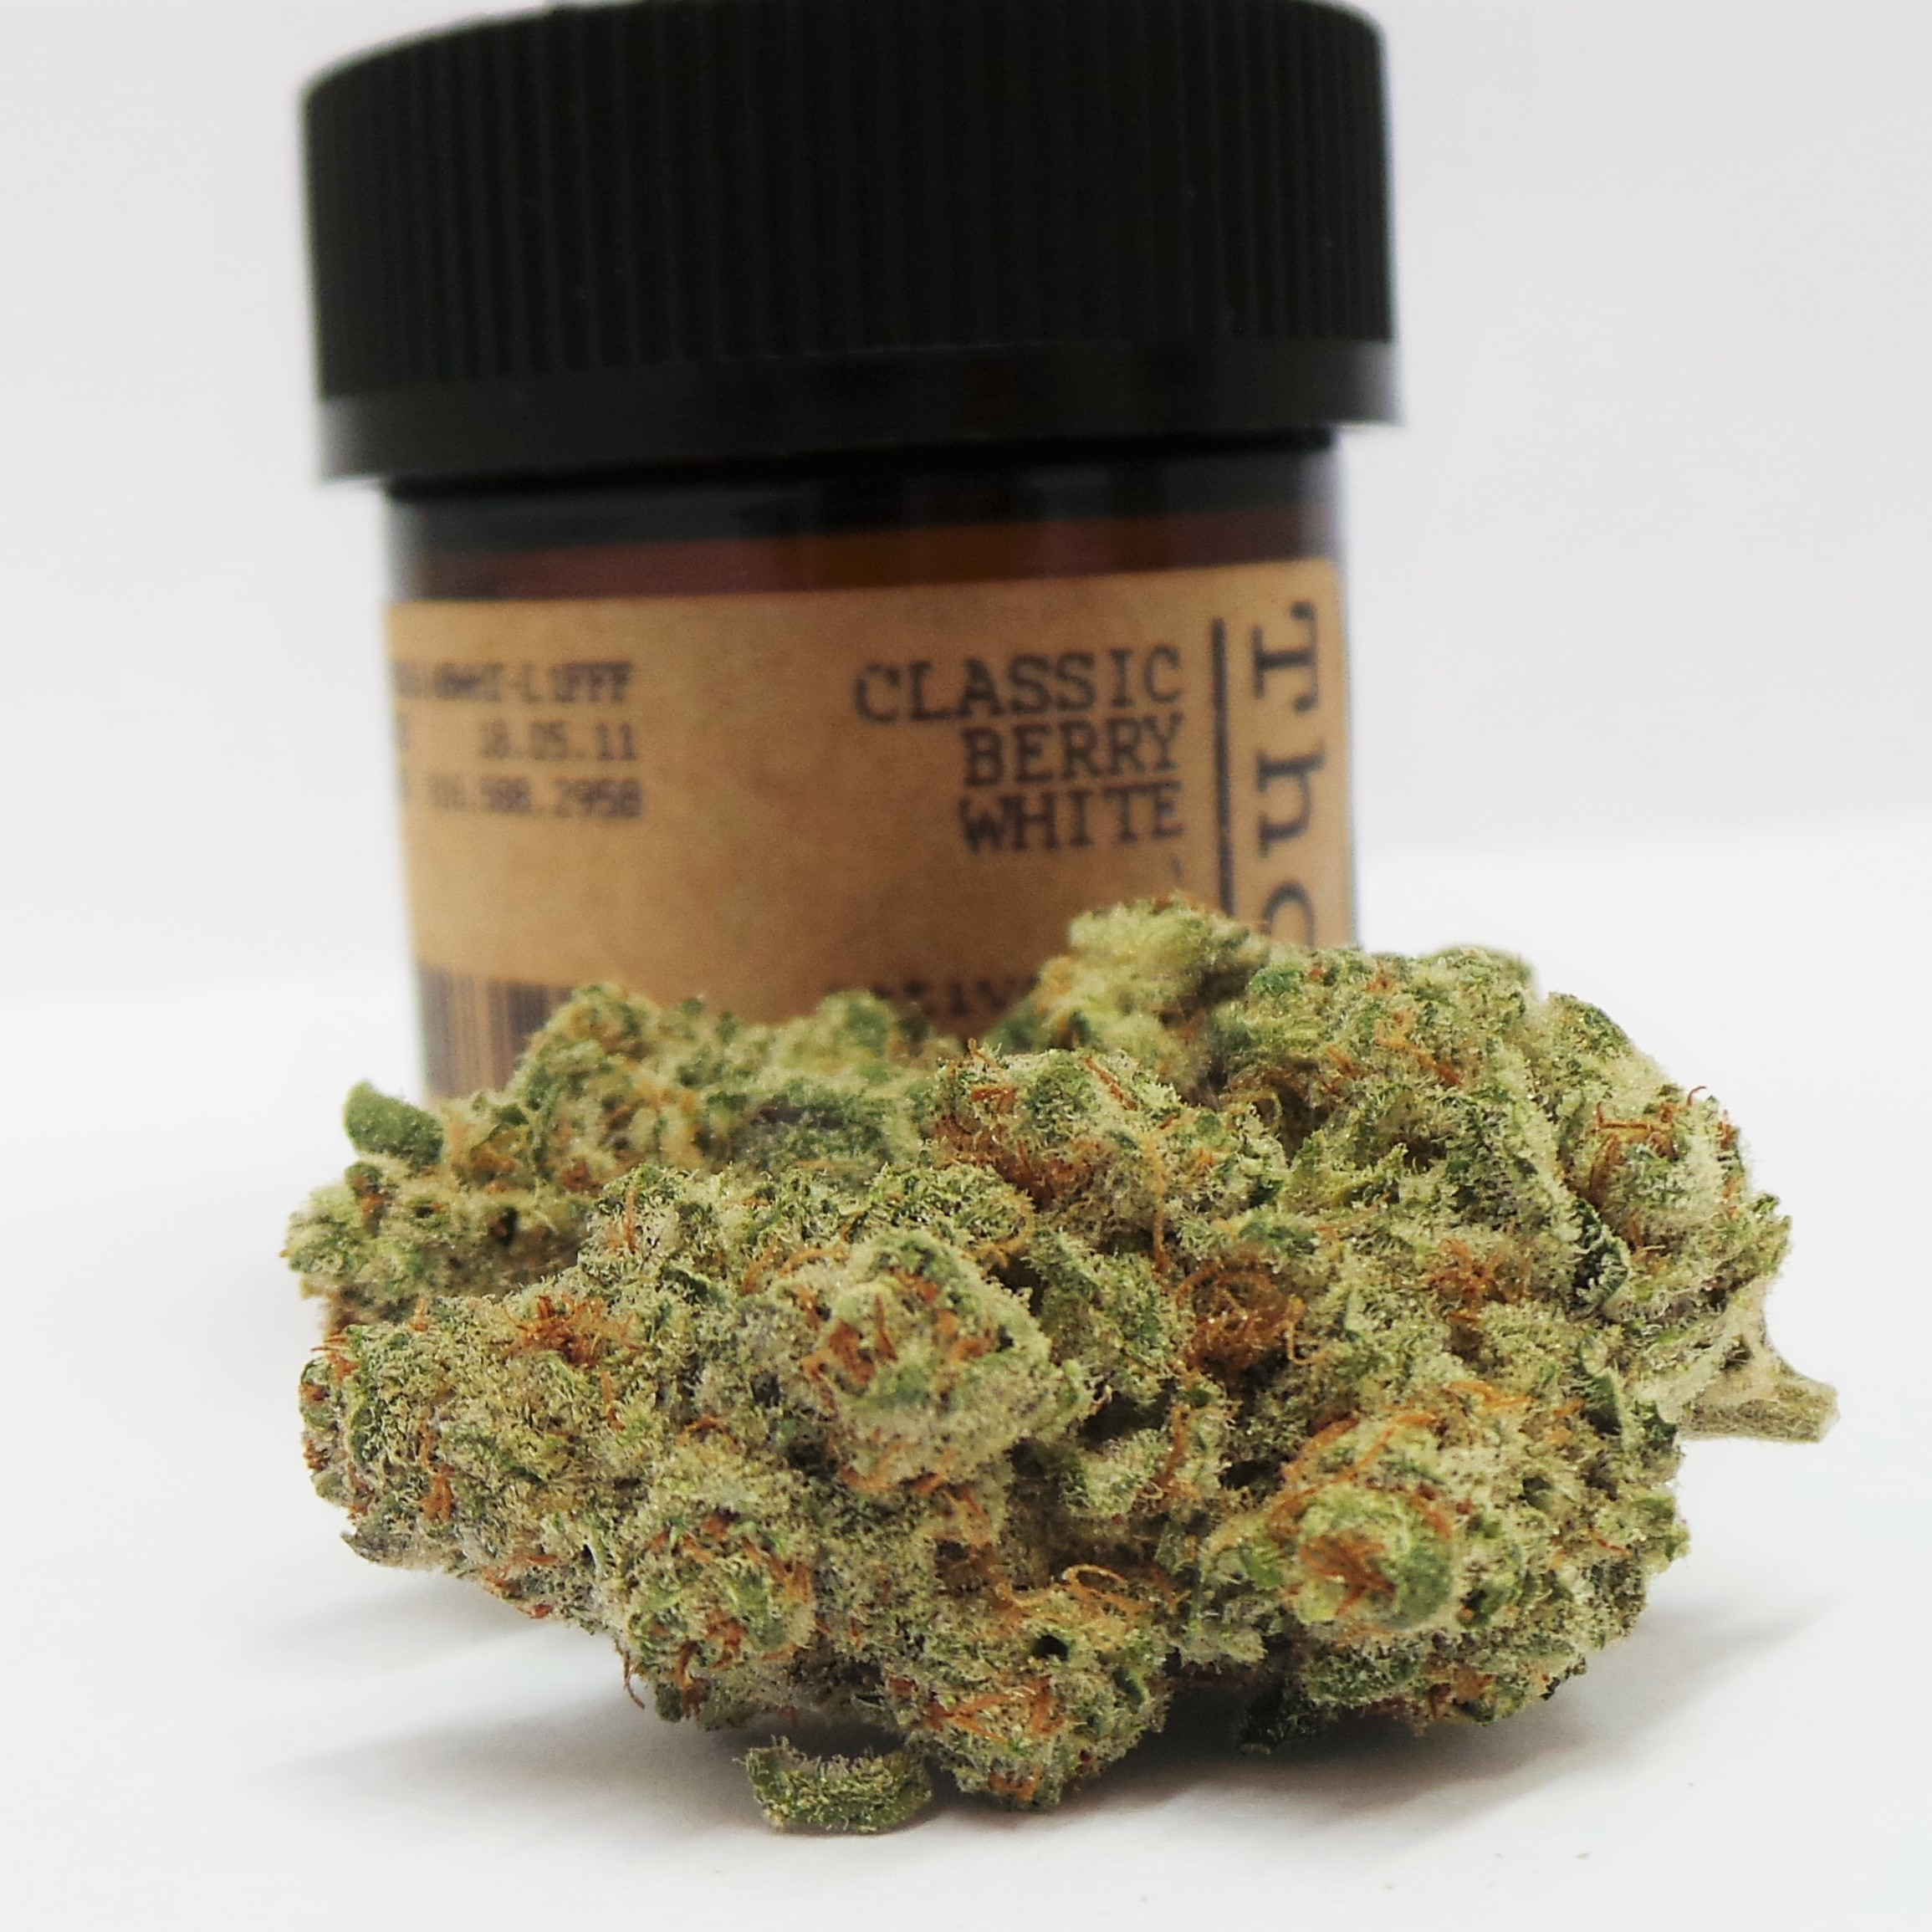 Classic Berry White| cannabisstores